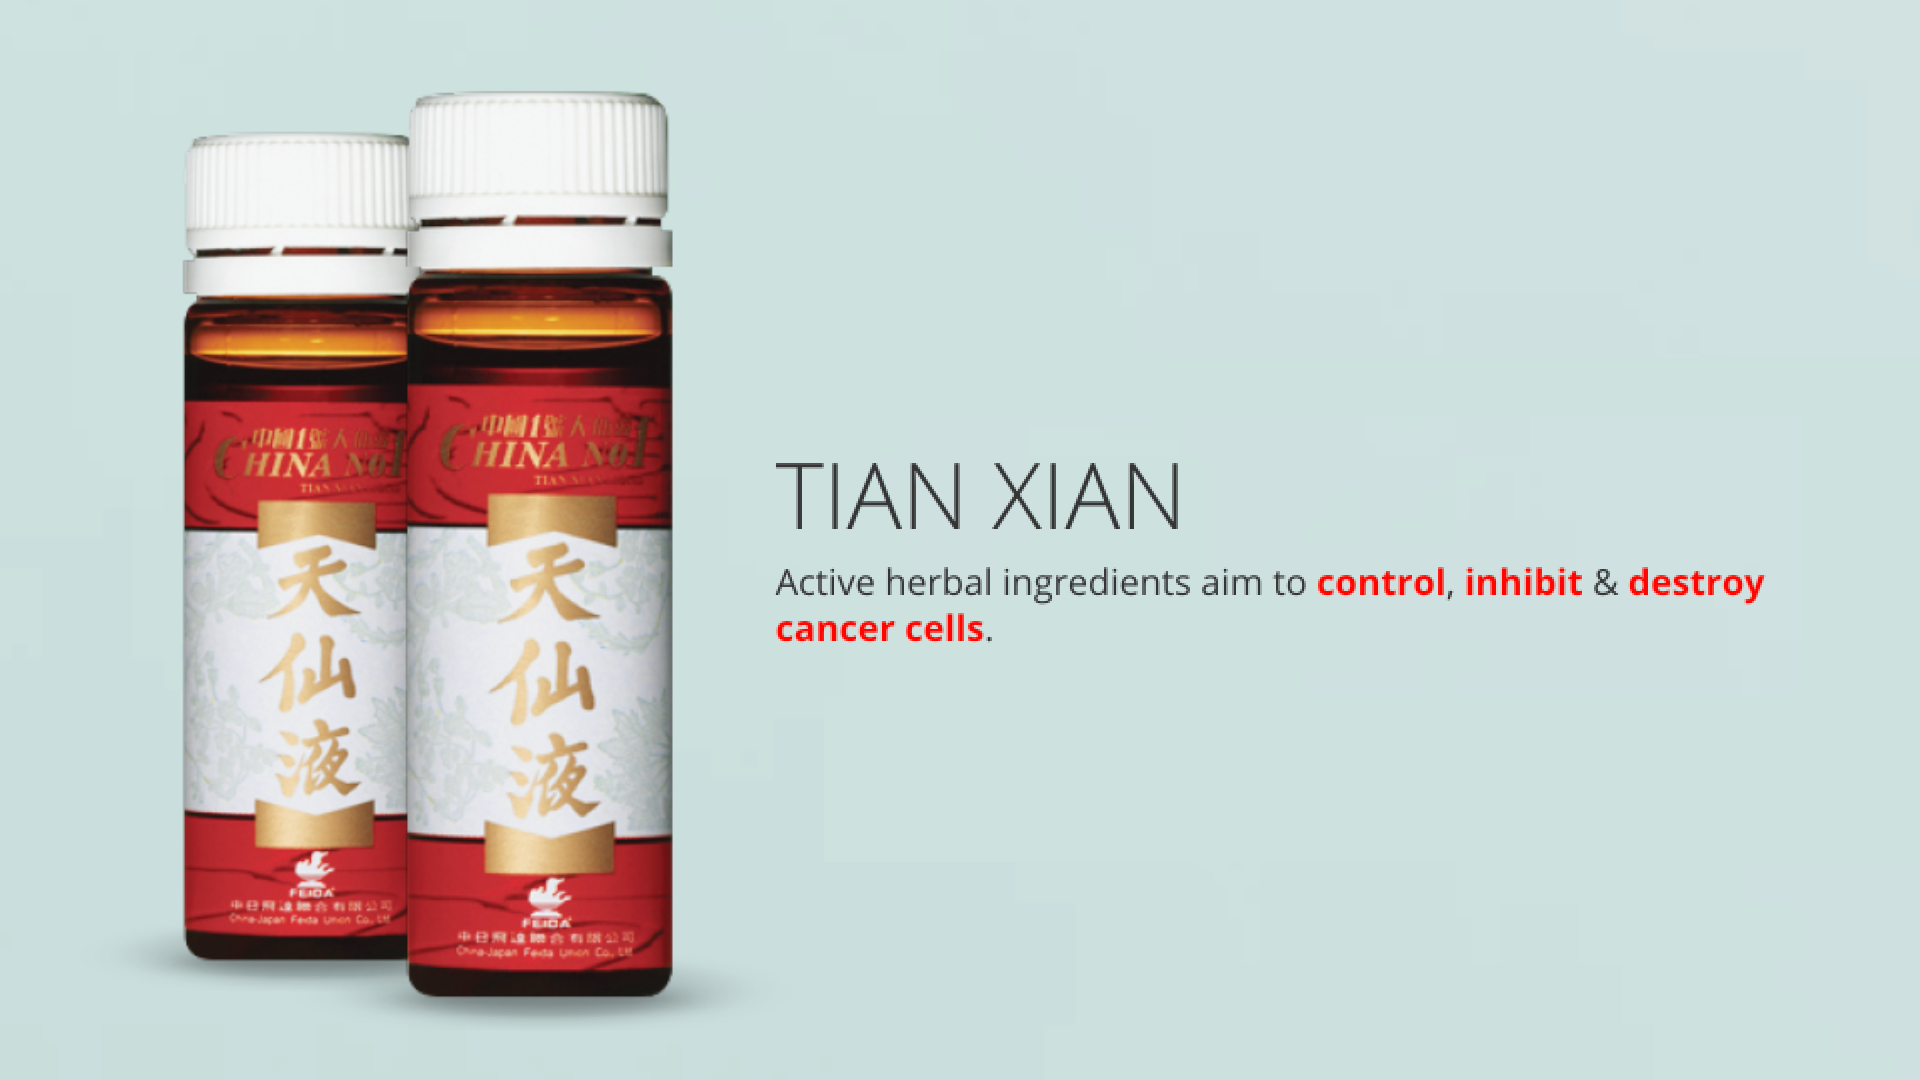 Tian Xian - Active herbal ingredients aim to control, inhibit & destroy cancer cells.